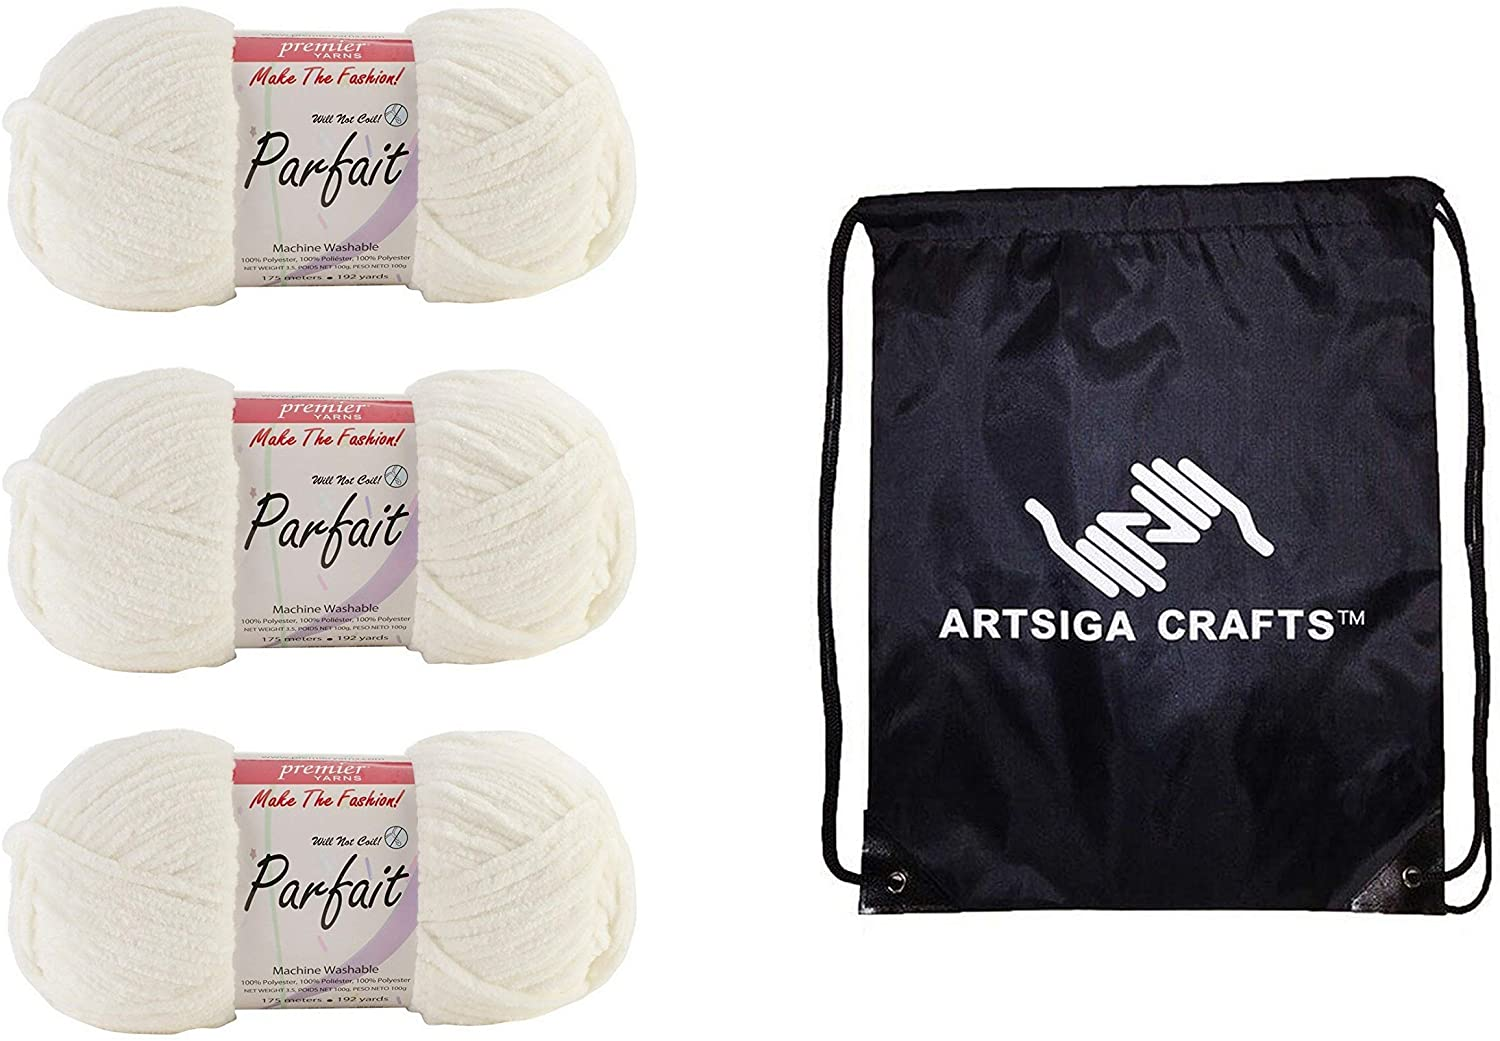 Premier Knitting Yarn Parfait Solid Cream 3-Skein Factory Pack (Same Dye Lot) 30-1 Bundle with 1 Artsiga Crafts Project Bag